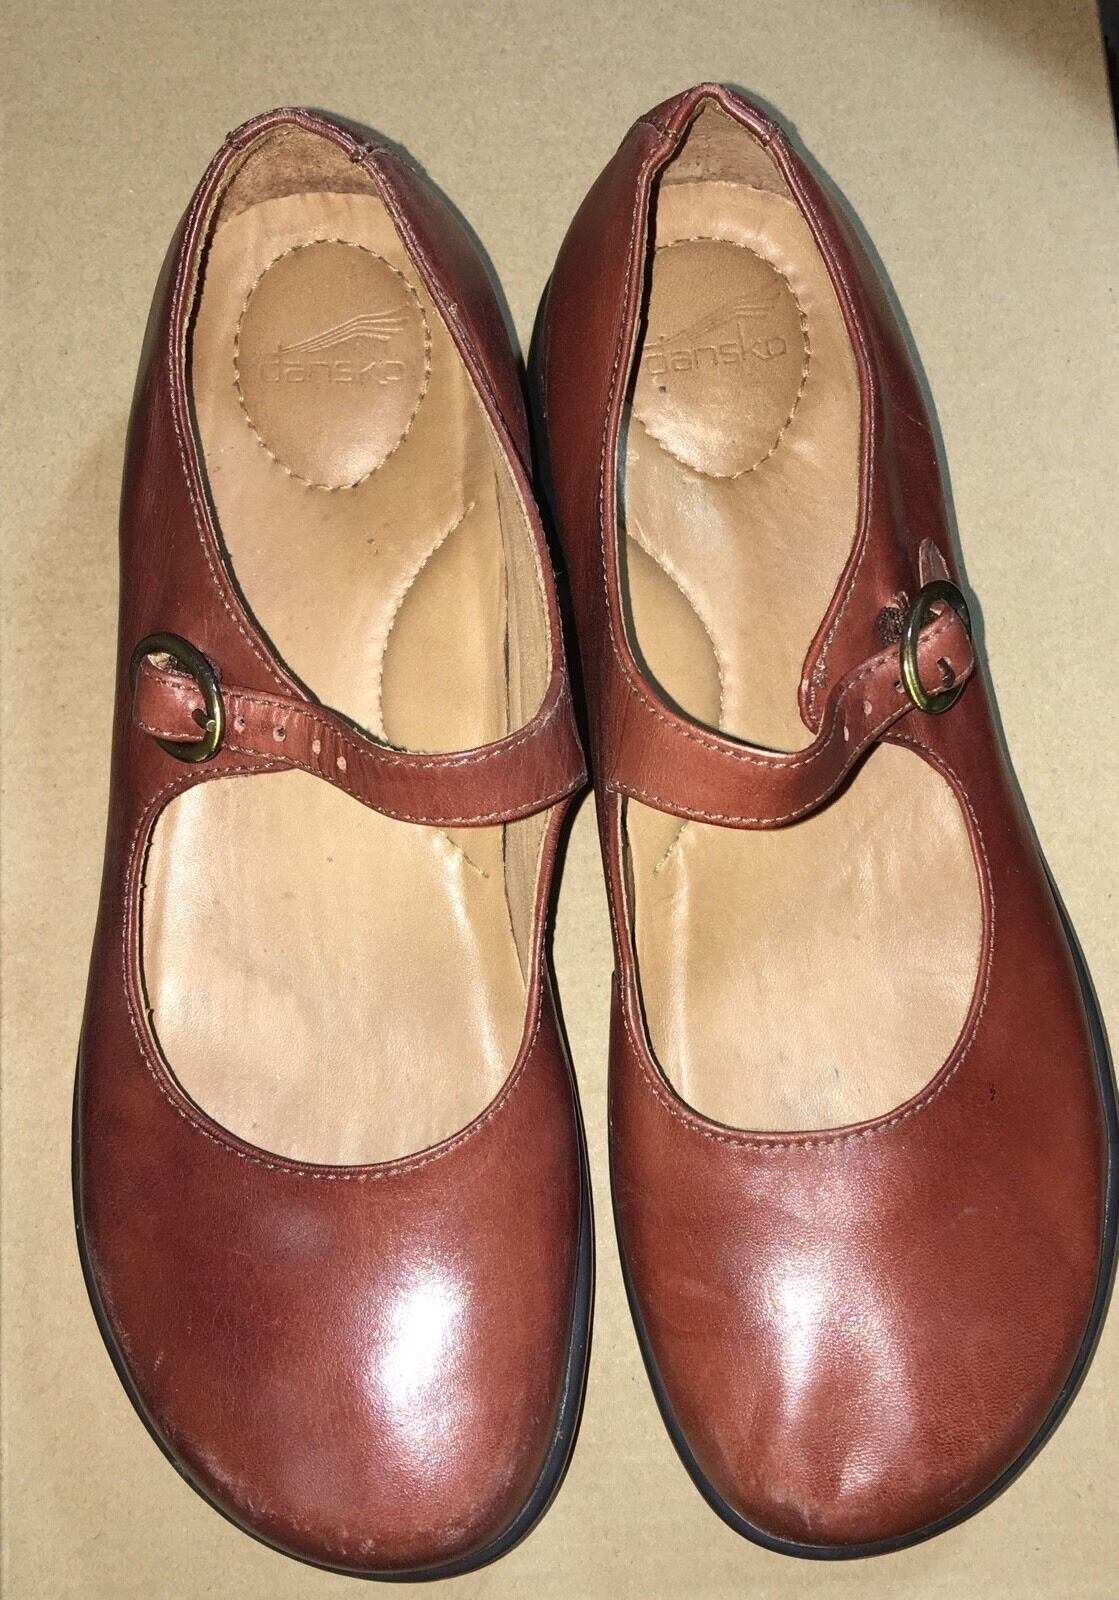 Dansko Mary Janes Dancing shoes Leather Upper Lining Size 37 Brazil Pre-owned